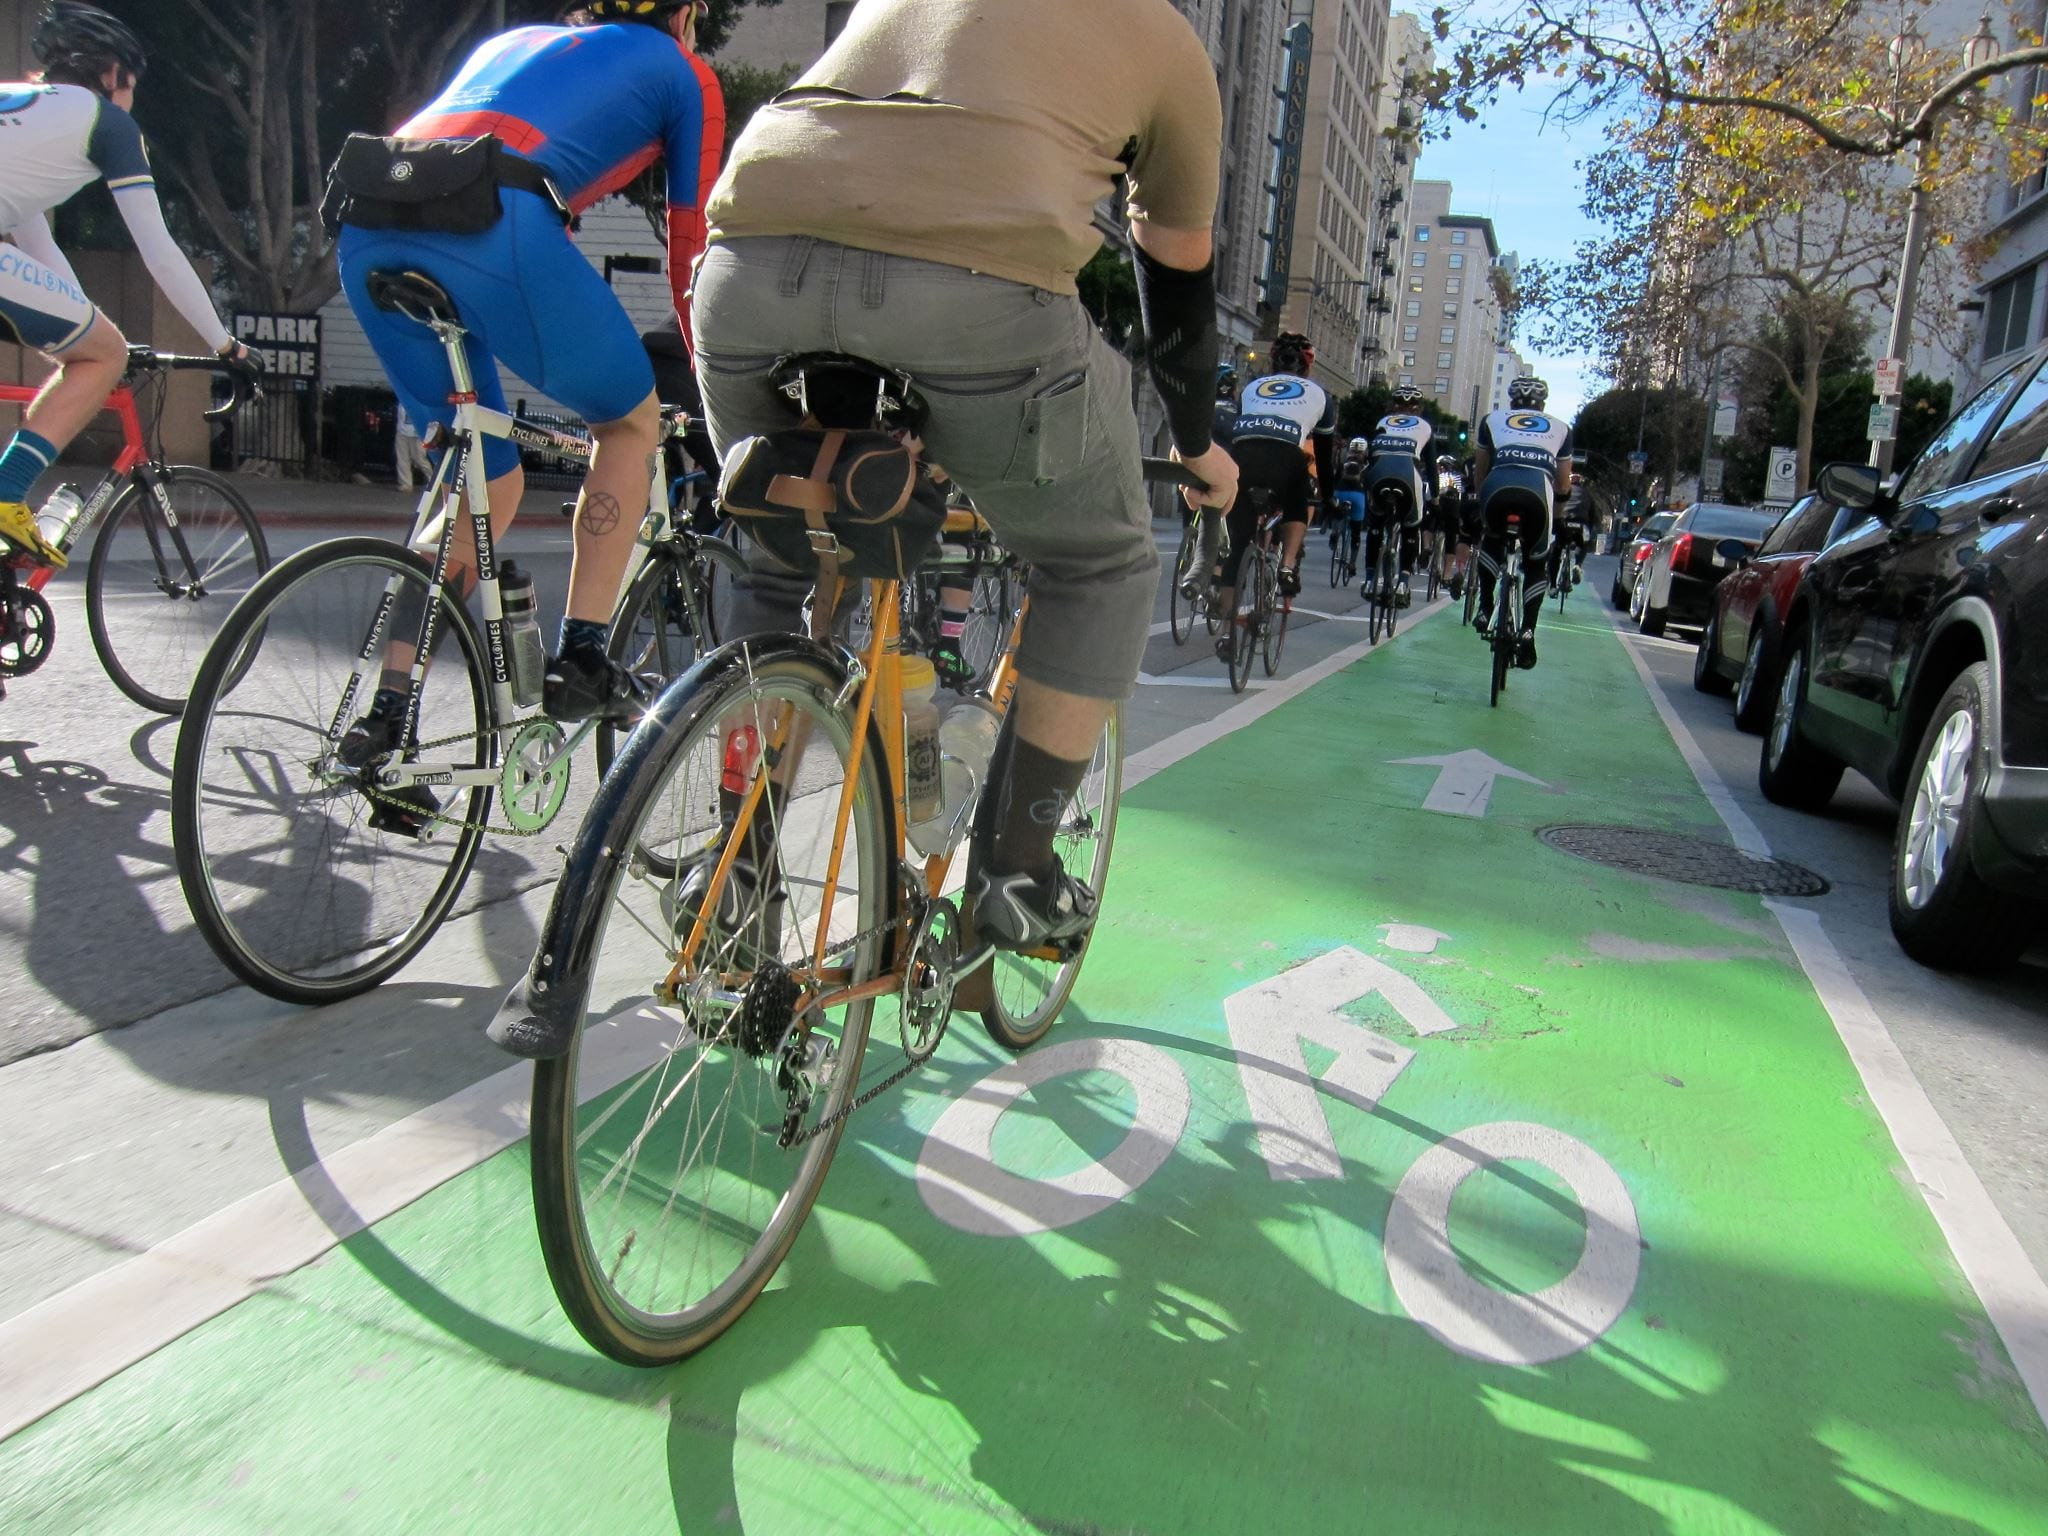 Cyclists using Spring St.'s green bike lane. Photo by Jances Certeza.